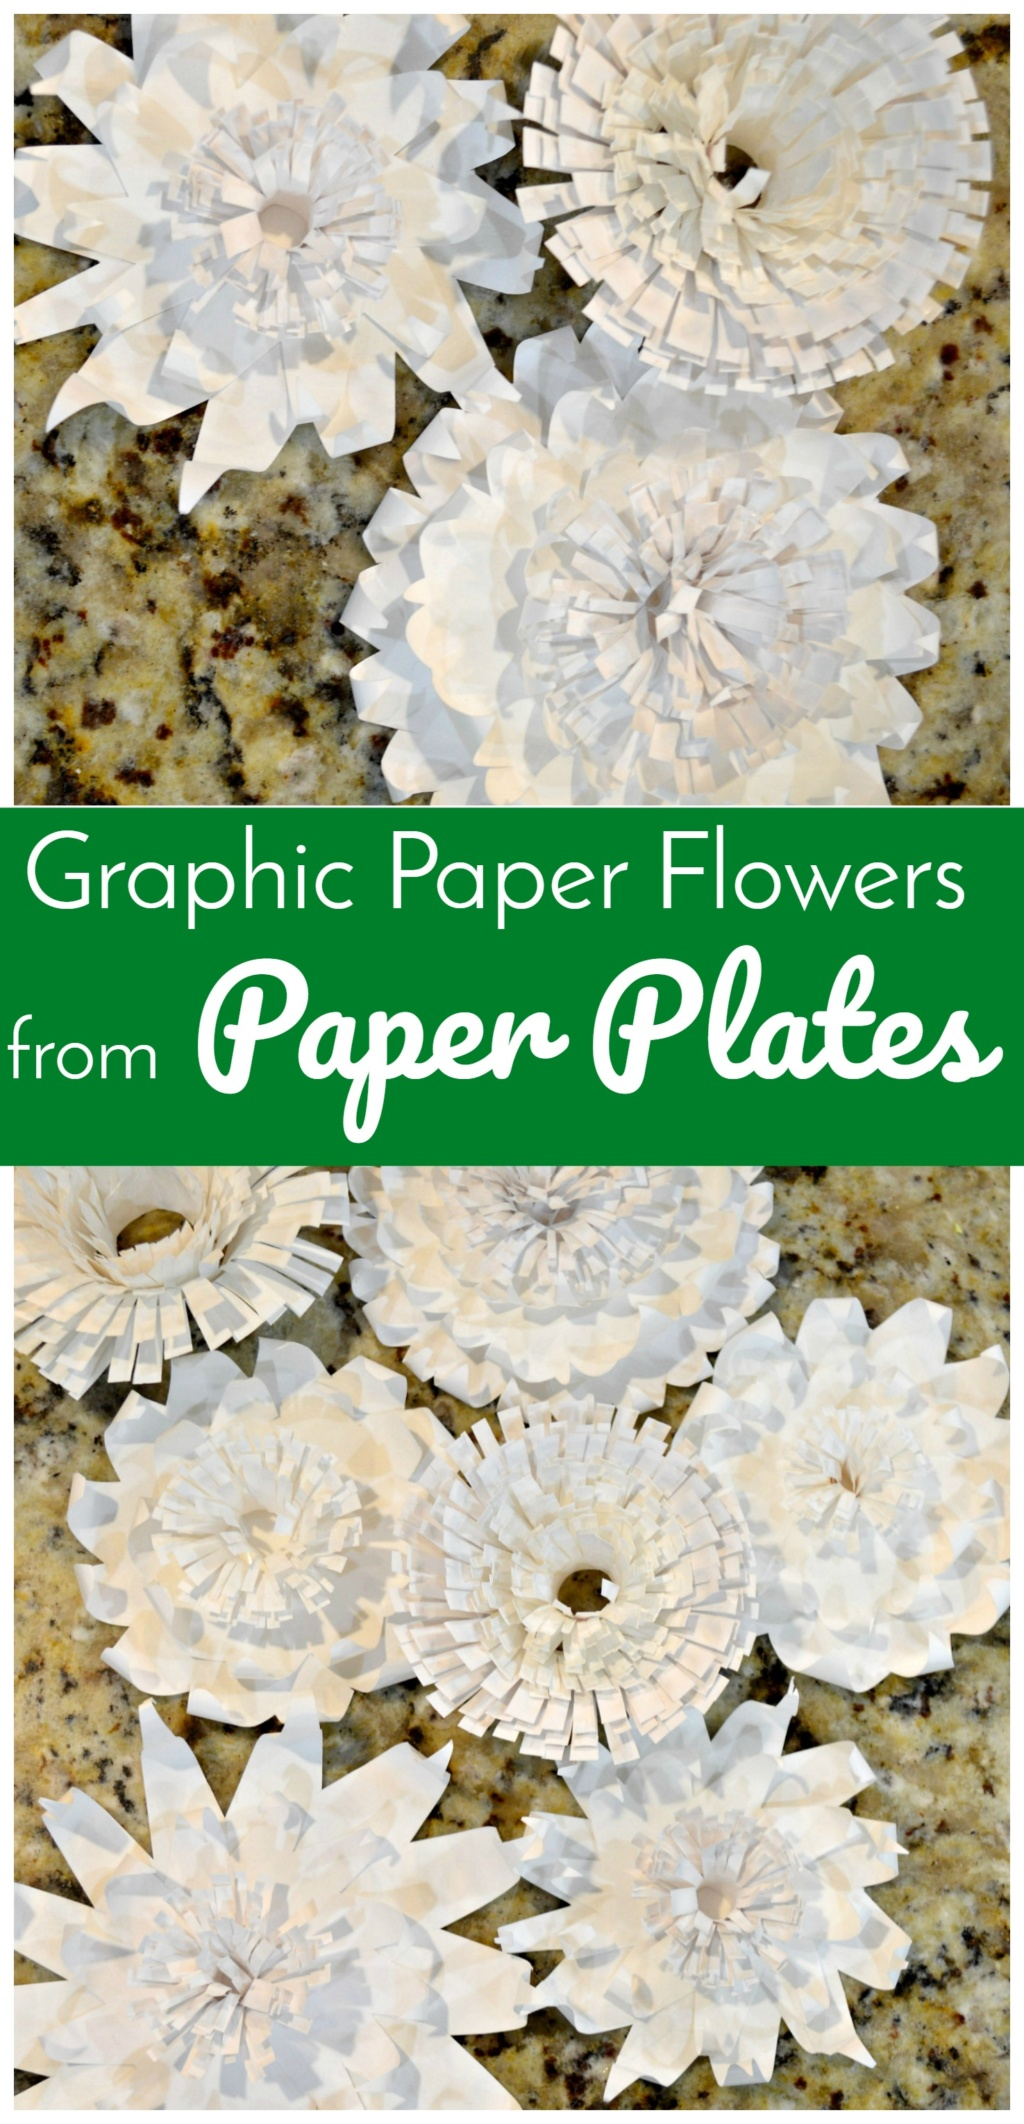 Graphic Paper Flowers From Paper Plates